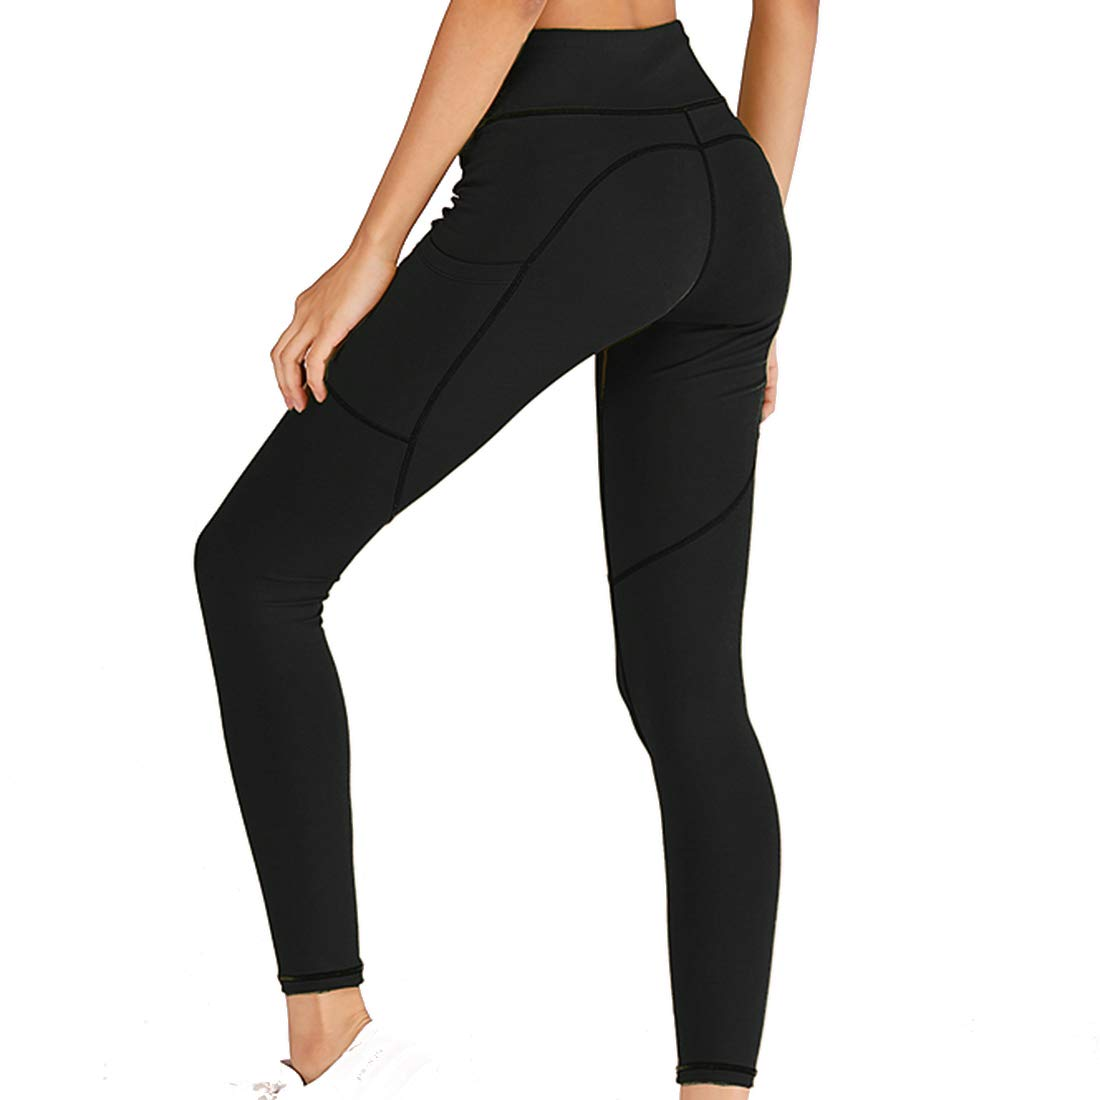 RUUHEE Women Workout Leggings High Waisted Seamless Compression Yoga Pants